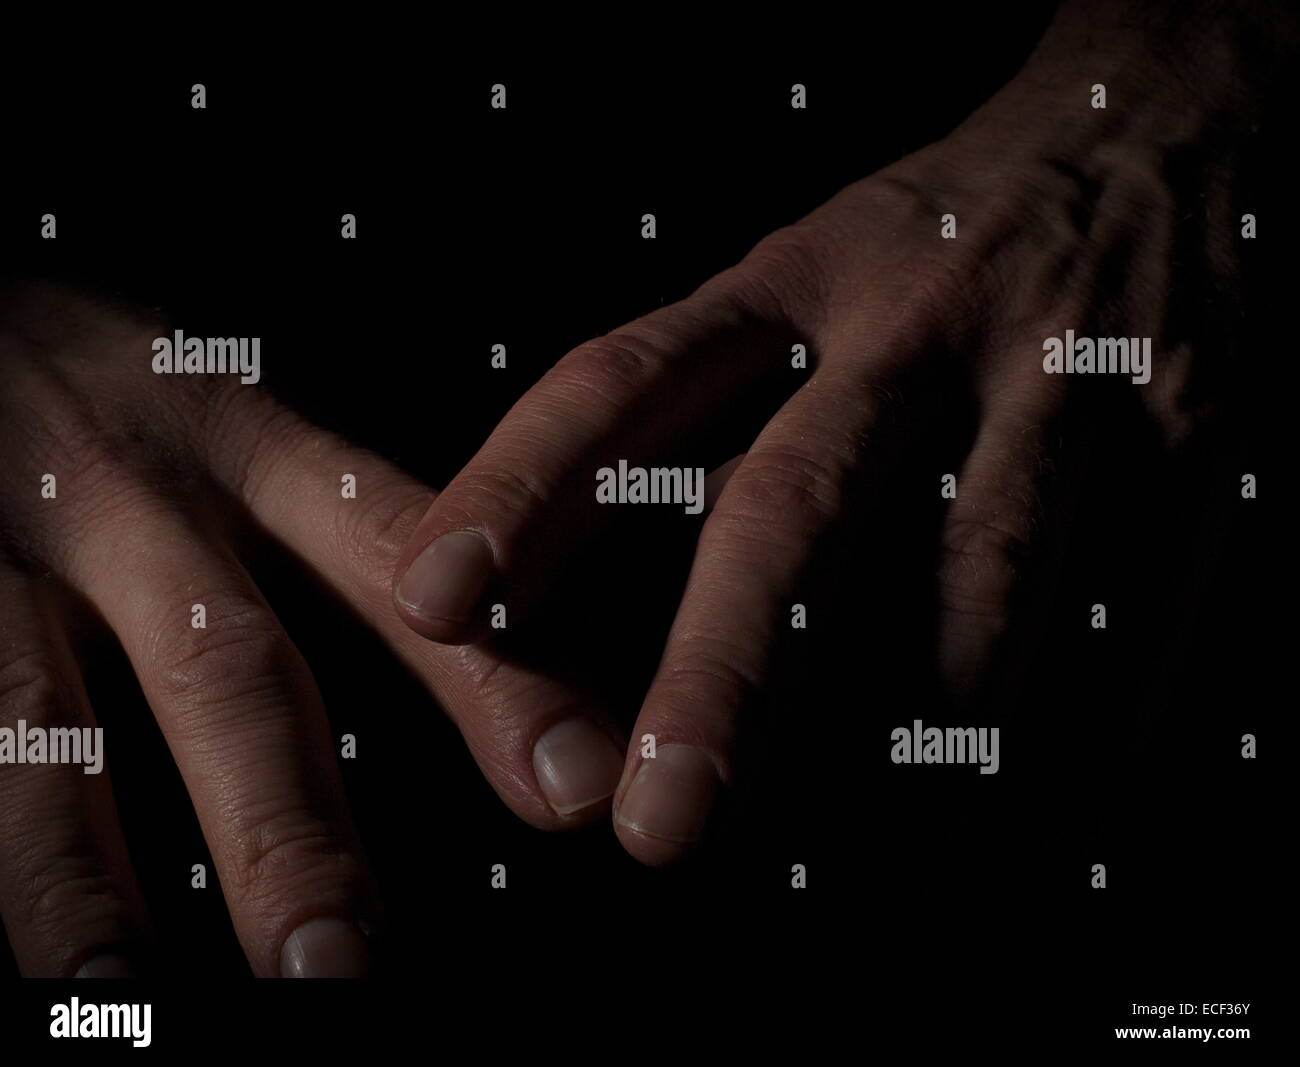 Man's hands on black background - Stock Image